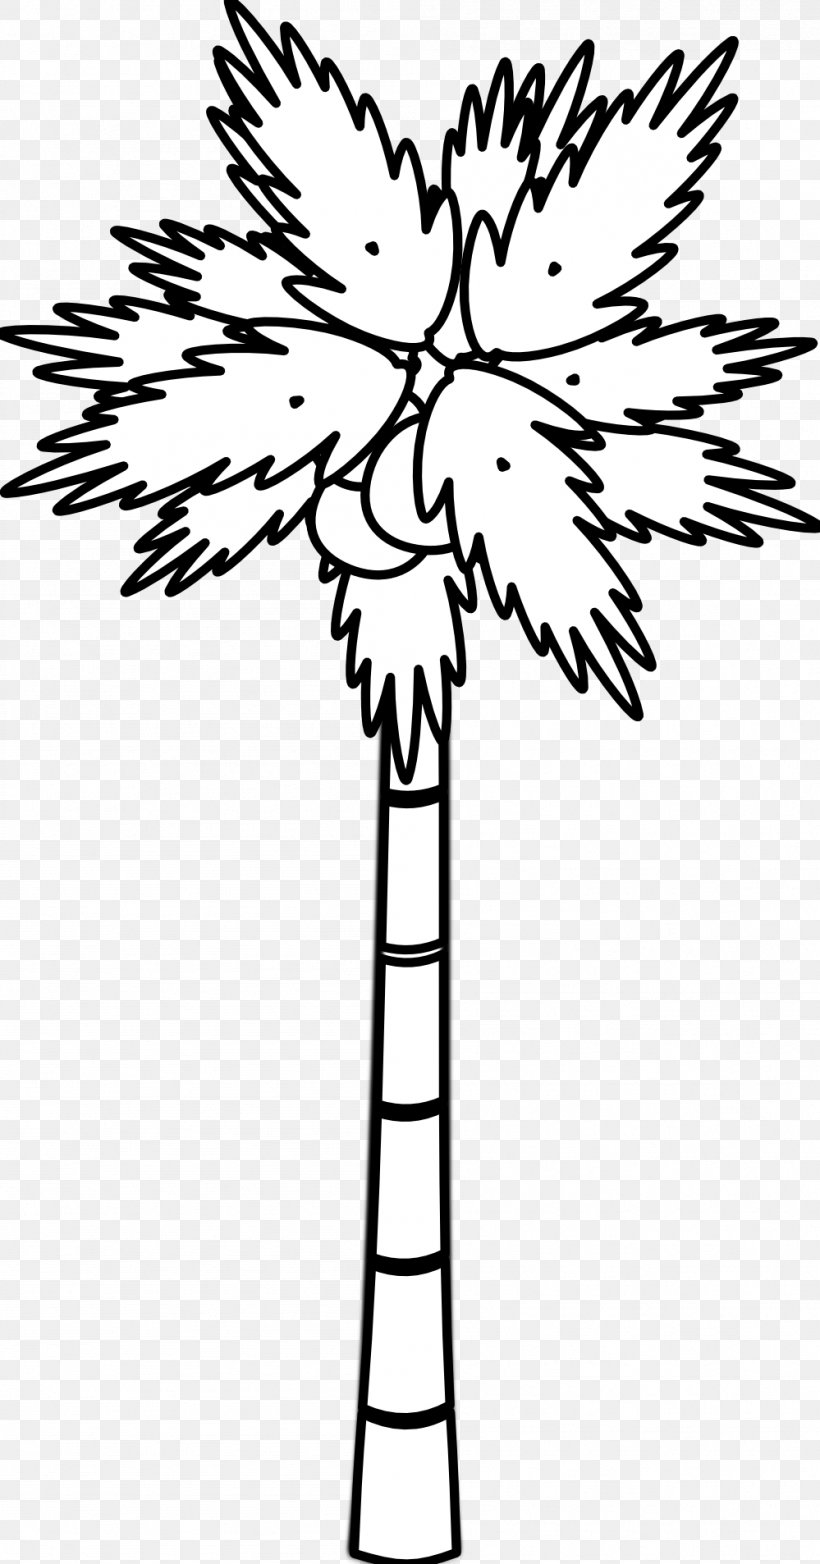 Arecaceae Black And White Tree Clip Art, PNG, 999x1906px, Arecaceae, Black And White, Branch, Coconut, Flora Download Free